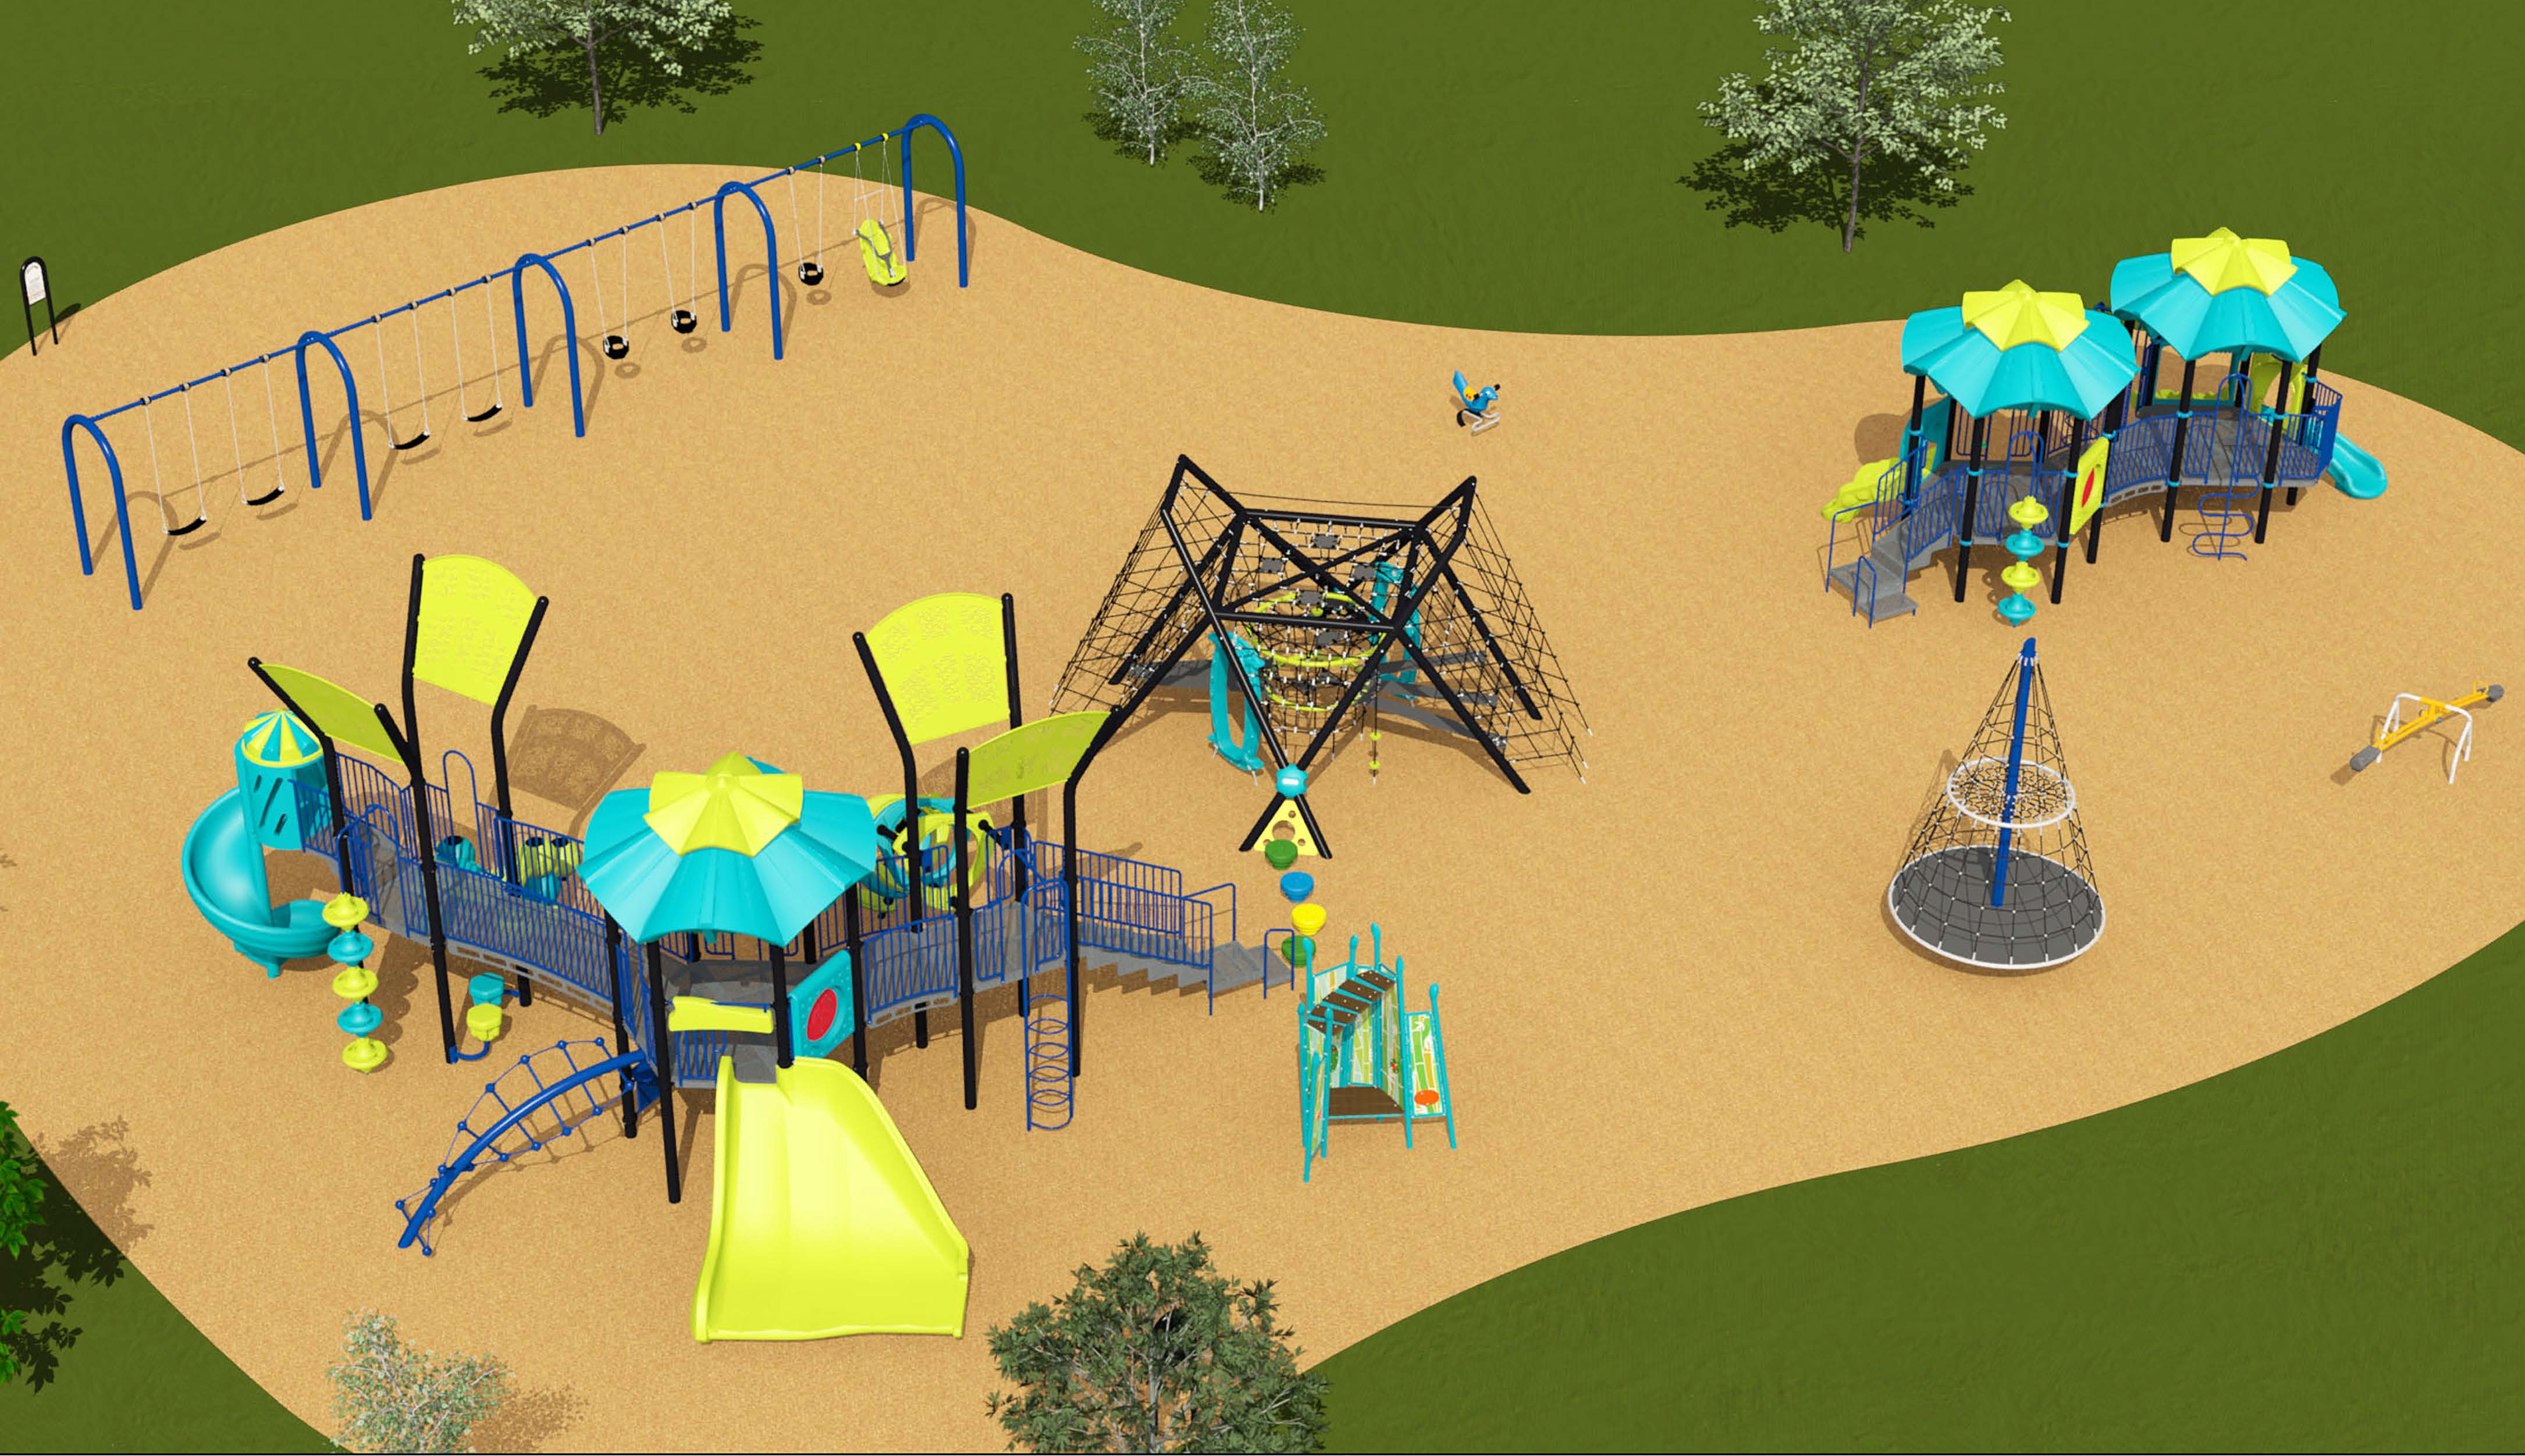 A rendering of the final playground design for Thomson Memorial Park which includes four belt swings, three toddler swings, and one accessible swing, one senior play structure for ages 5 to 12, one junior play structure for ages 1.5 to 5, one large rope climber, one spinning rope climber, four stepping stones and one standalone spring toy.